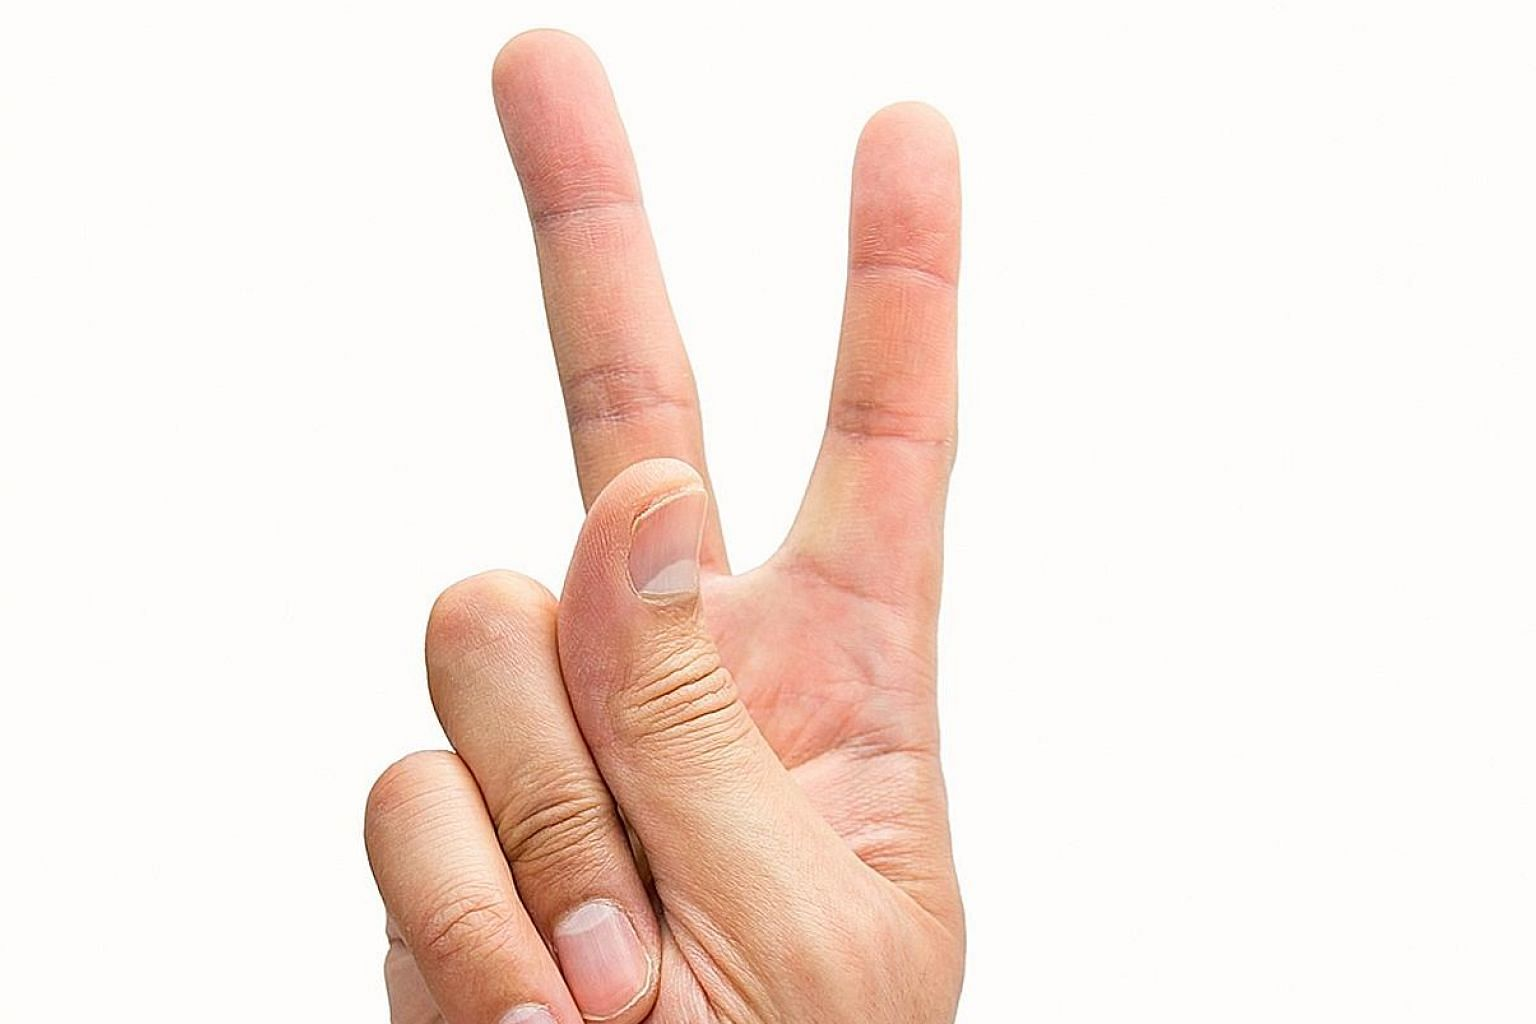 Researchers are able to copy fingerprints from photos taken by a digital camera, raising alarm bells over the two-fingered gesture.